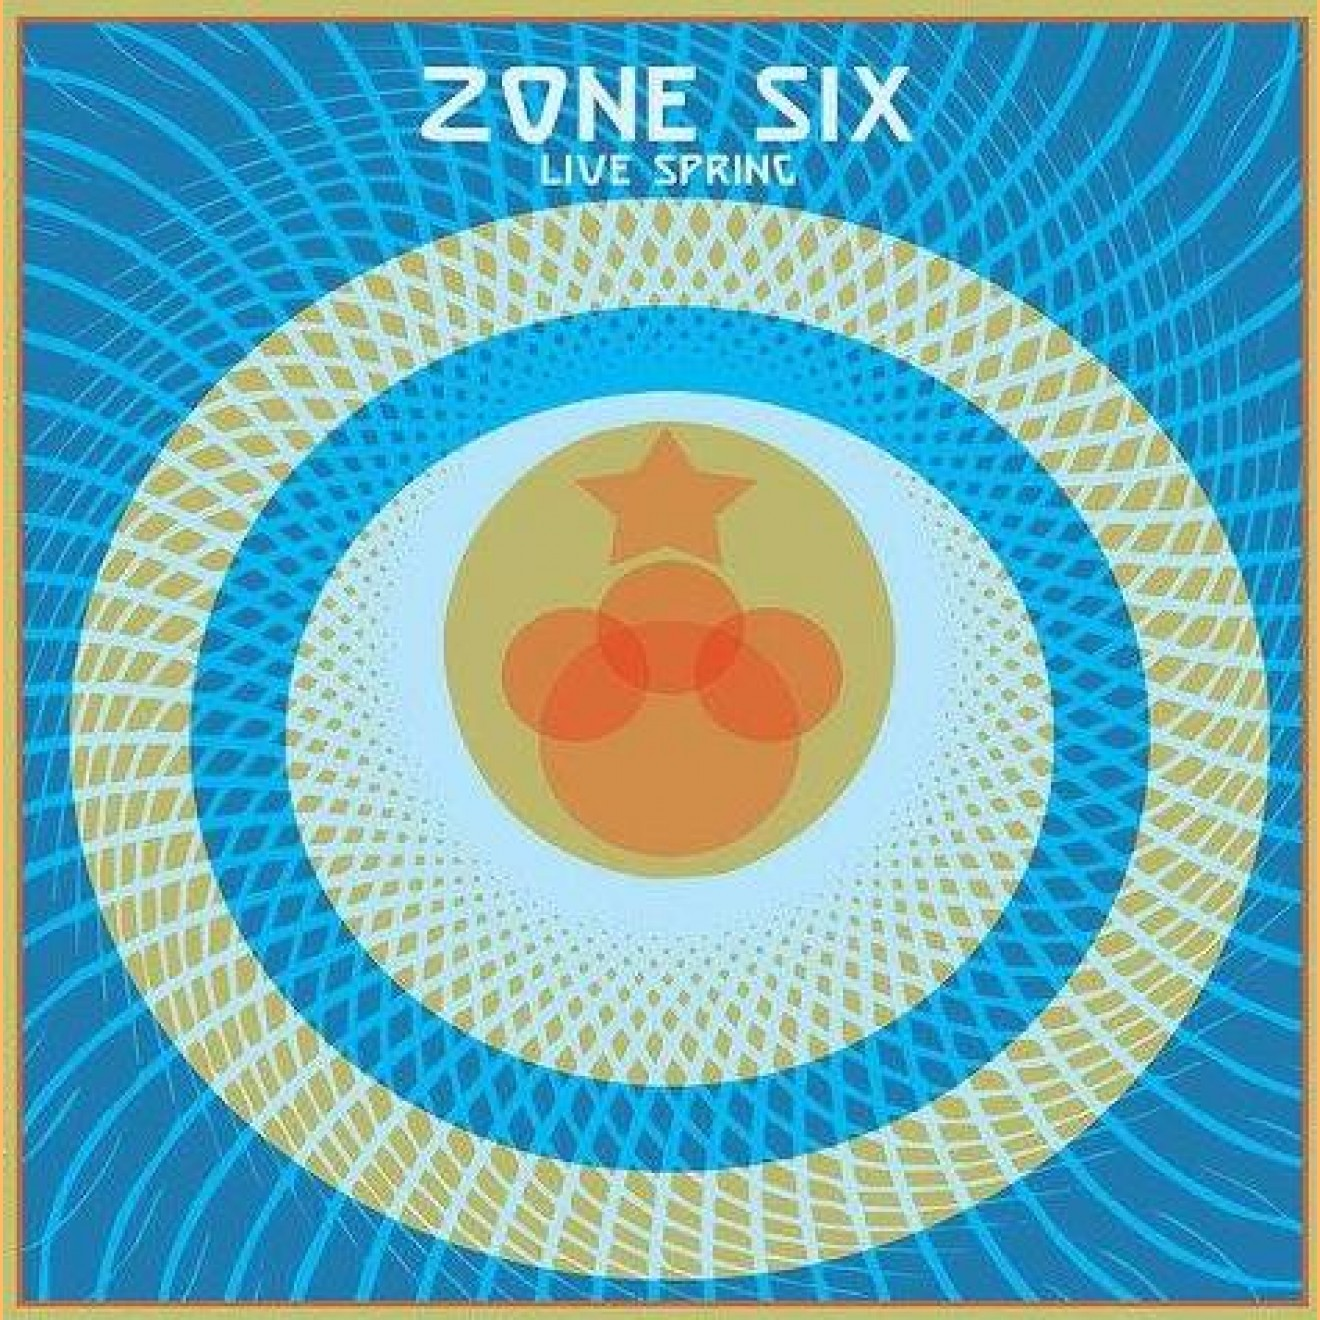 ZONE SIX - live spring LP